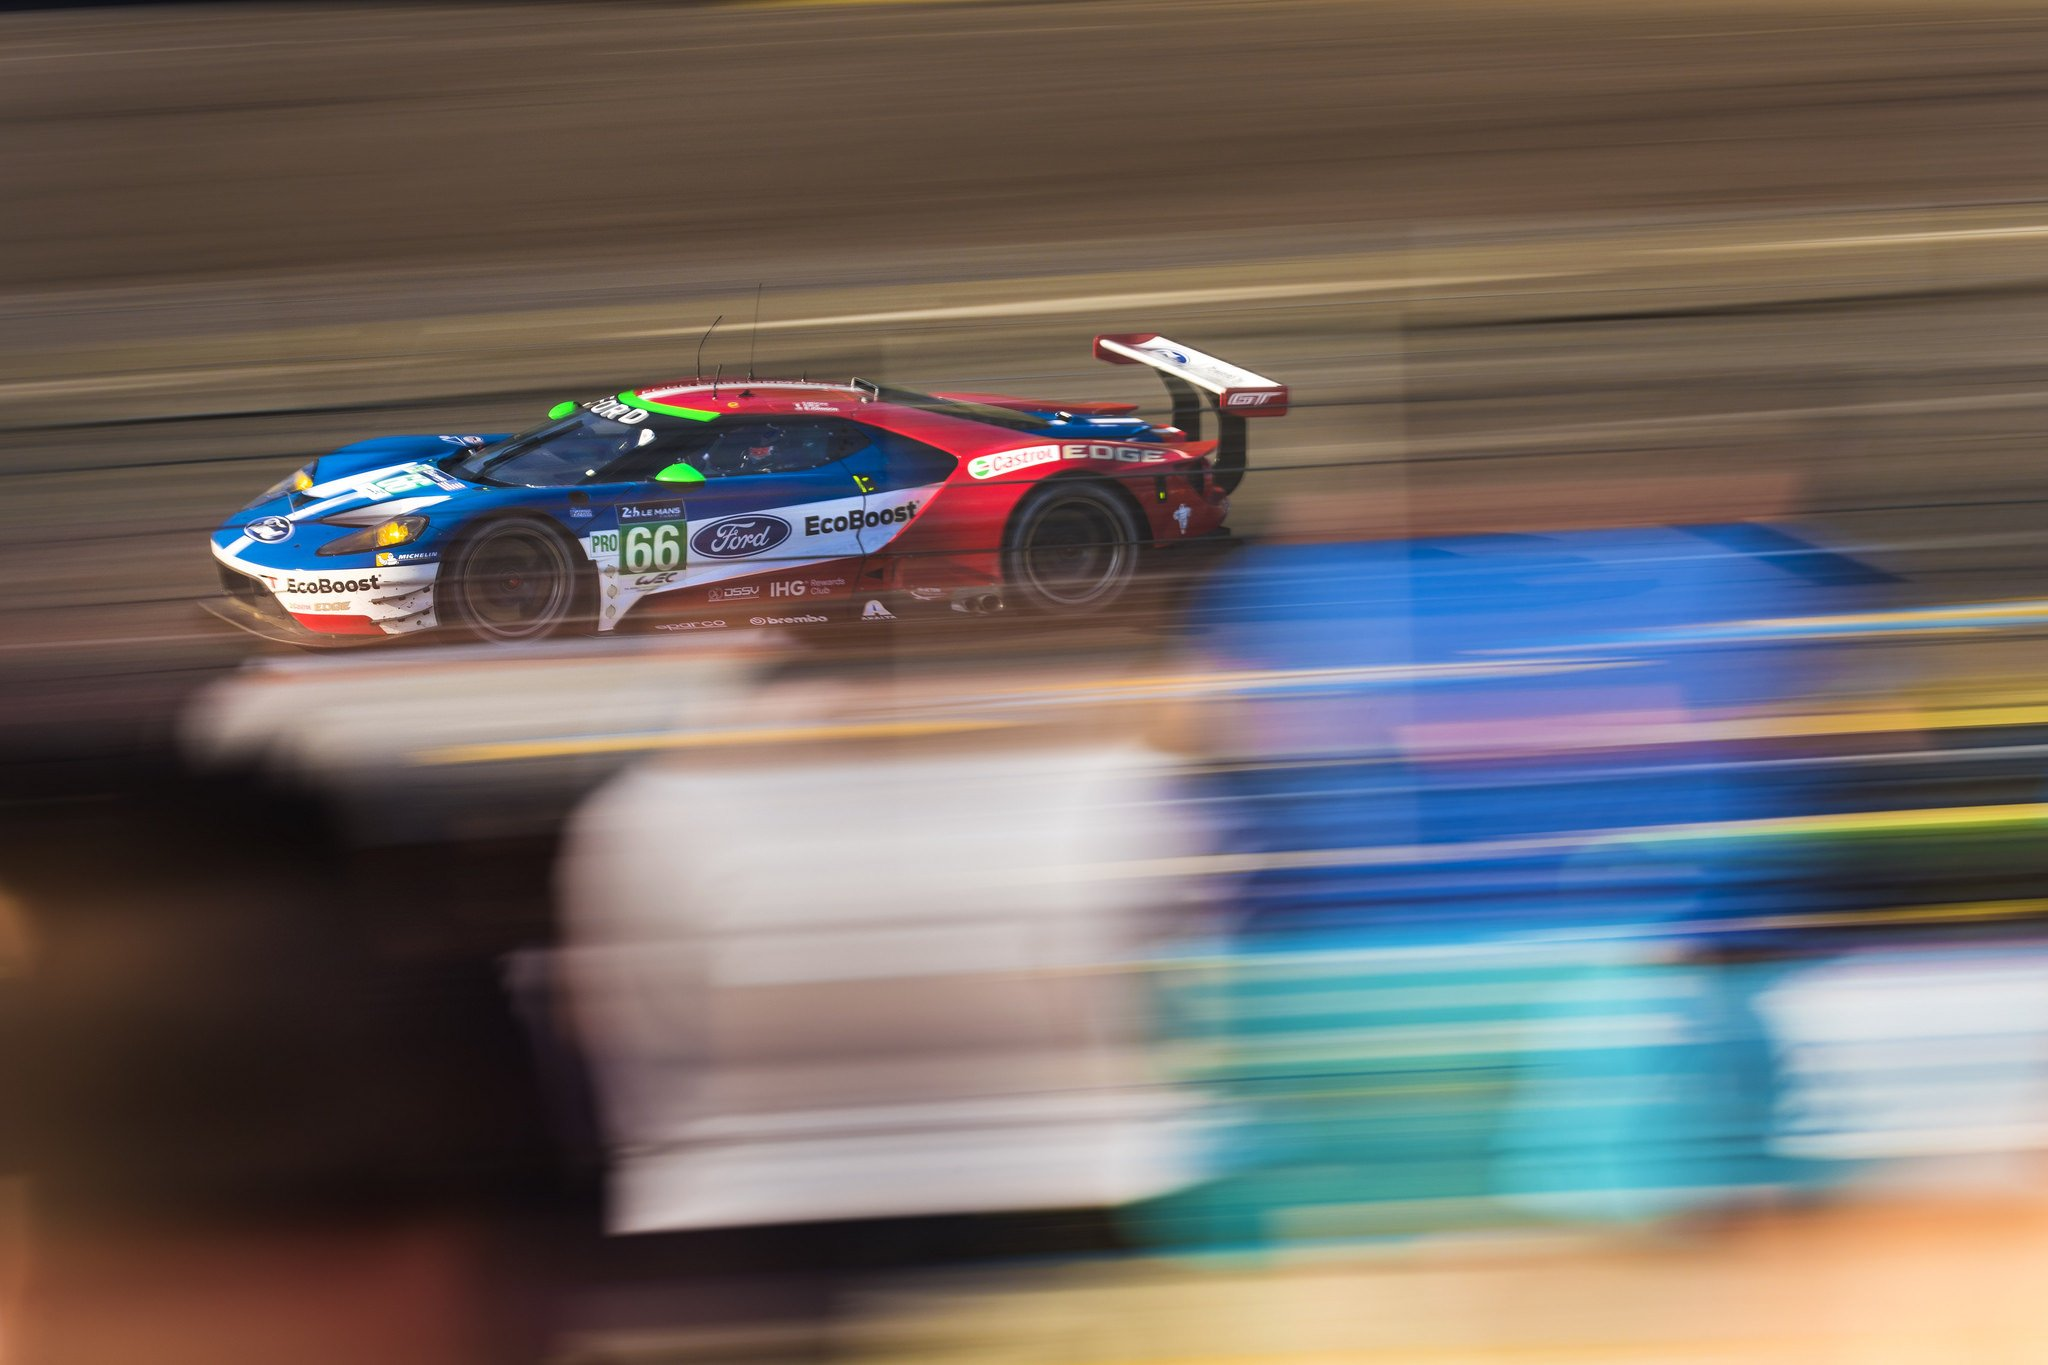 Ford GT Qualifying Results From Le Mans - AllFordMustangs Ford Gt Le Mans Qualifying on 1967 le mans, mclaren 650s le mans, shelby le mans, 1969 le mans, bmw le mans, 1965 le mans, bugatti eb110 le mans, mclaren f1 le mans, corvette le mans, toyota le mans, ford at le mans, 1970 le mans, 2015 le mans, 1975 le mans, dodge challenger le mans, mazda le mans, porsche le mans, lamborghini le mans, 68 le mans, honda nsx le mans,